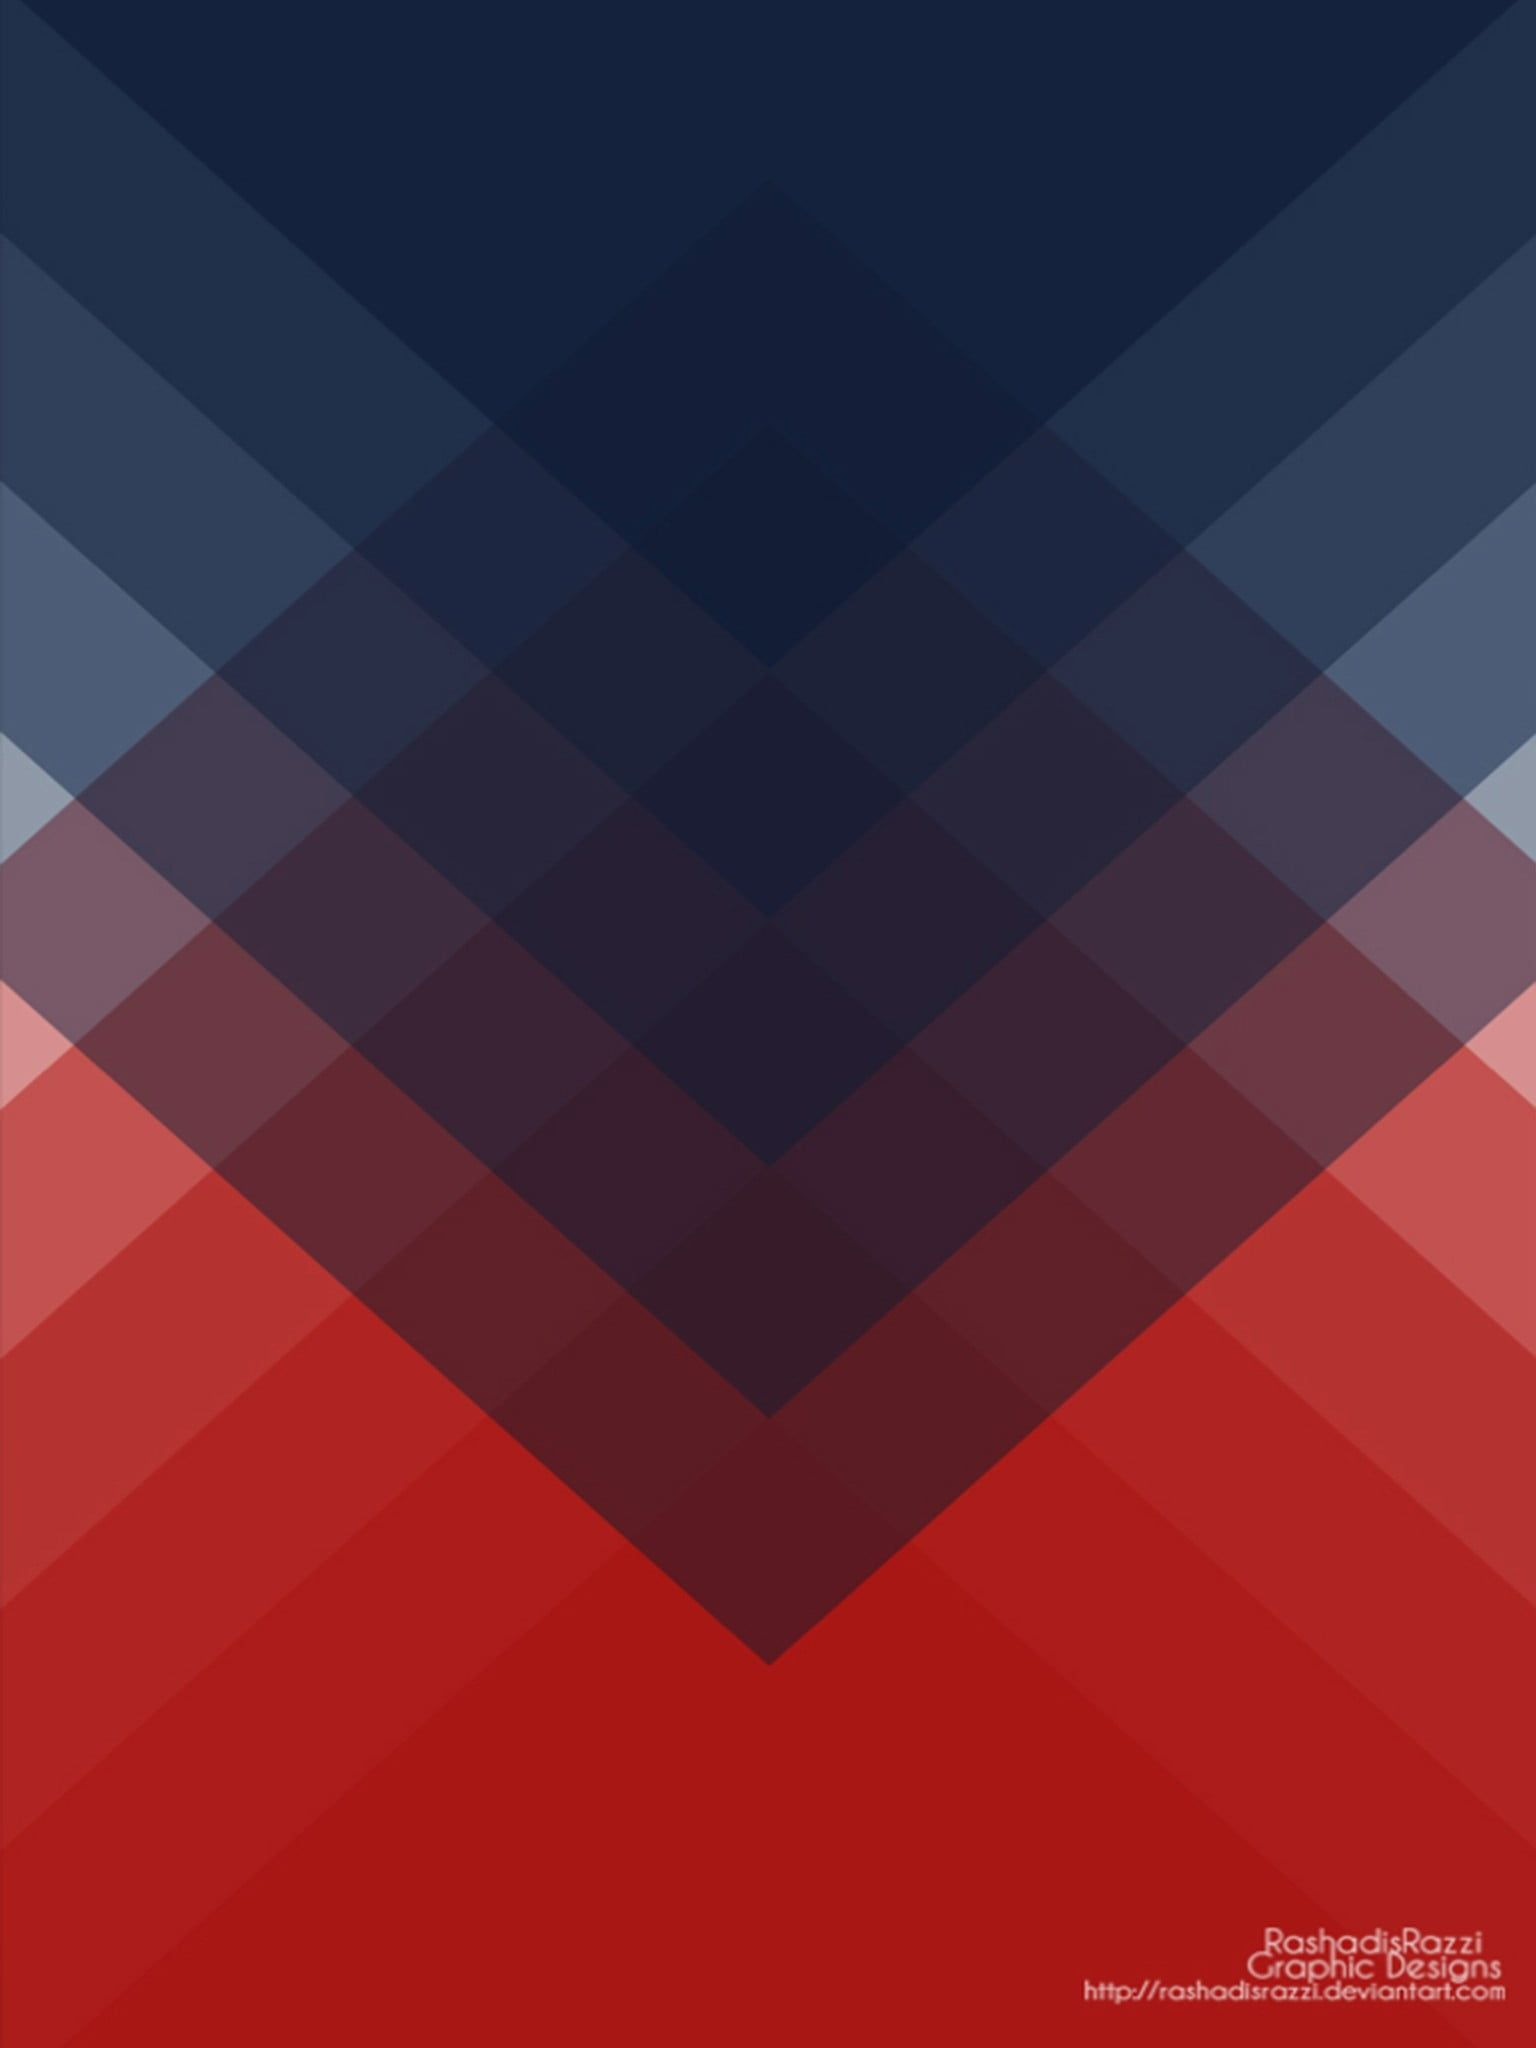 Blue And Red Abstract Wallpaper Minimalism 1080p Wallpaper Hdwallpaper Desktop Red Abstract Wallpaper Abstract Wallpaper Red Abstract